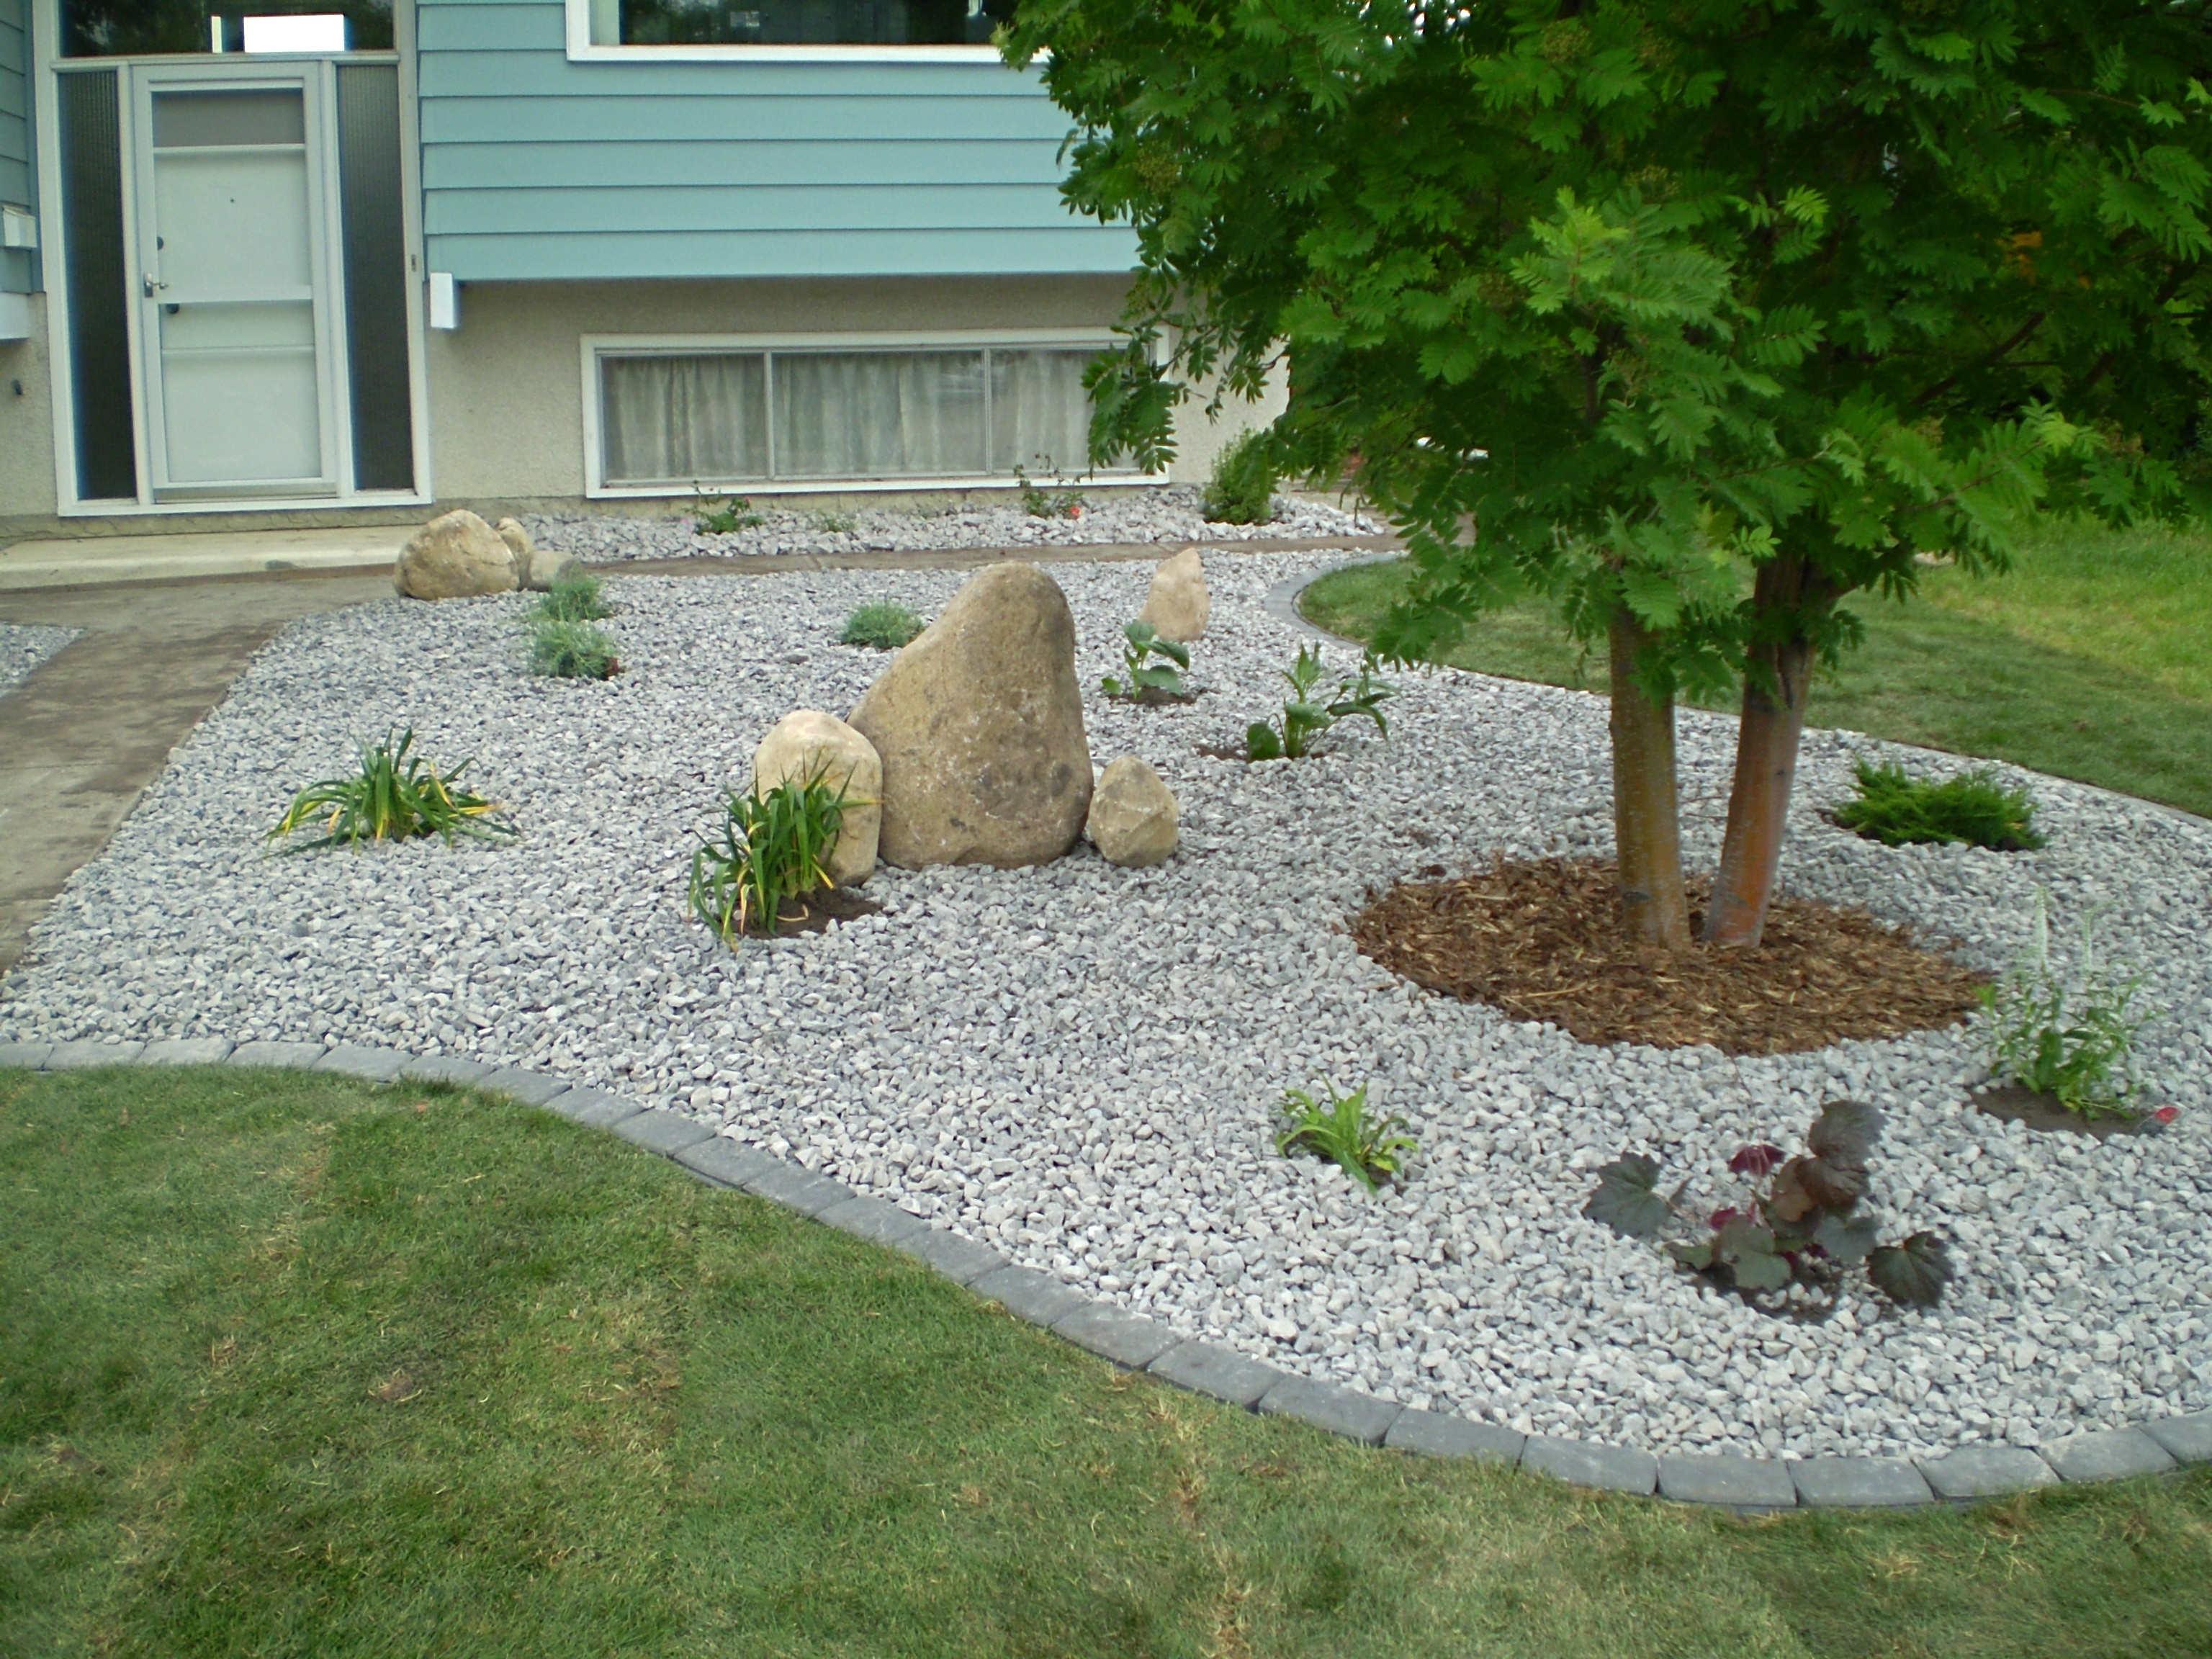 Image of: Landscaping With Rocks And Stones Whitemud Garden Centre And Throughout Front Yard Landscaping With Rocks Create Front Yard Landscaping With Rocks